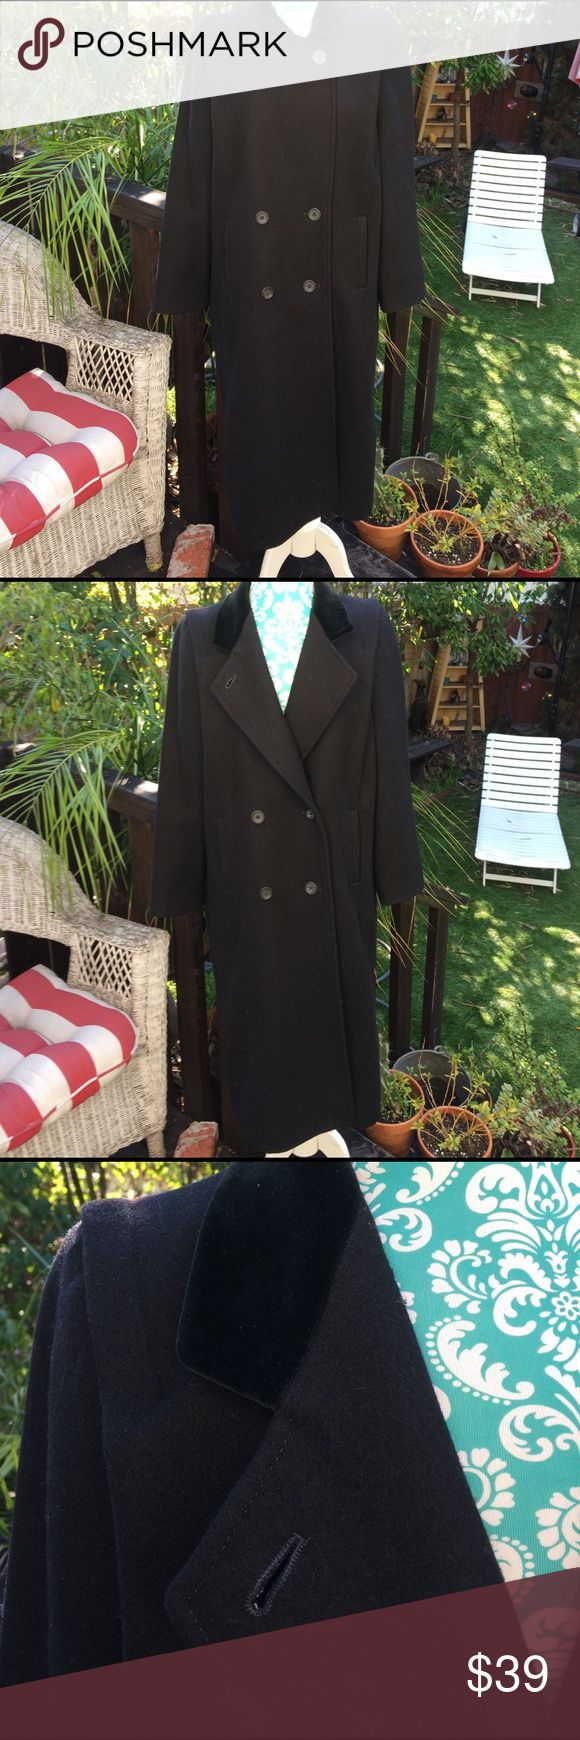 100% wool Sz 9/10 black maxi pea coat lovely! International scene 100% virgin wool Sz 9/10 black maxi pea coat with velvet collar and pockets what more do you want?  In great shape extra buttons included International Scene Jackets & Coats Pea Coats